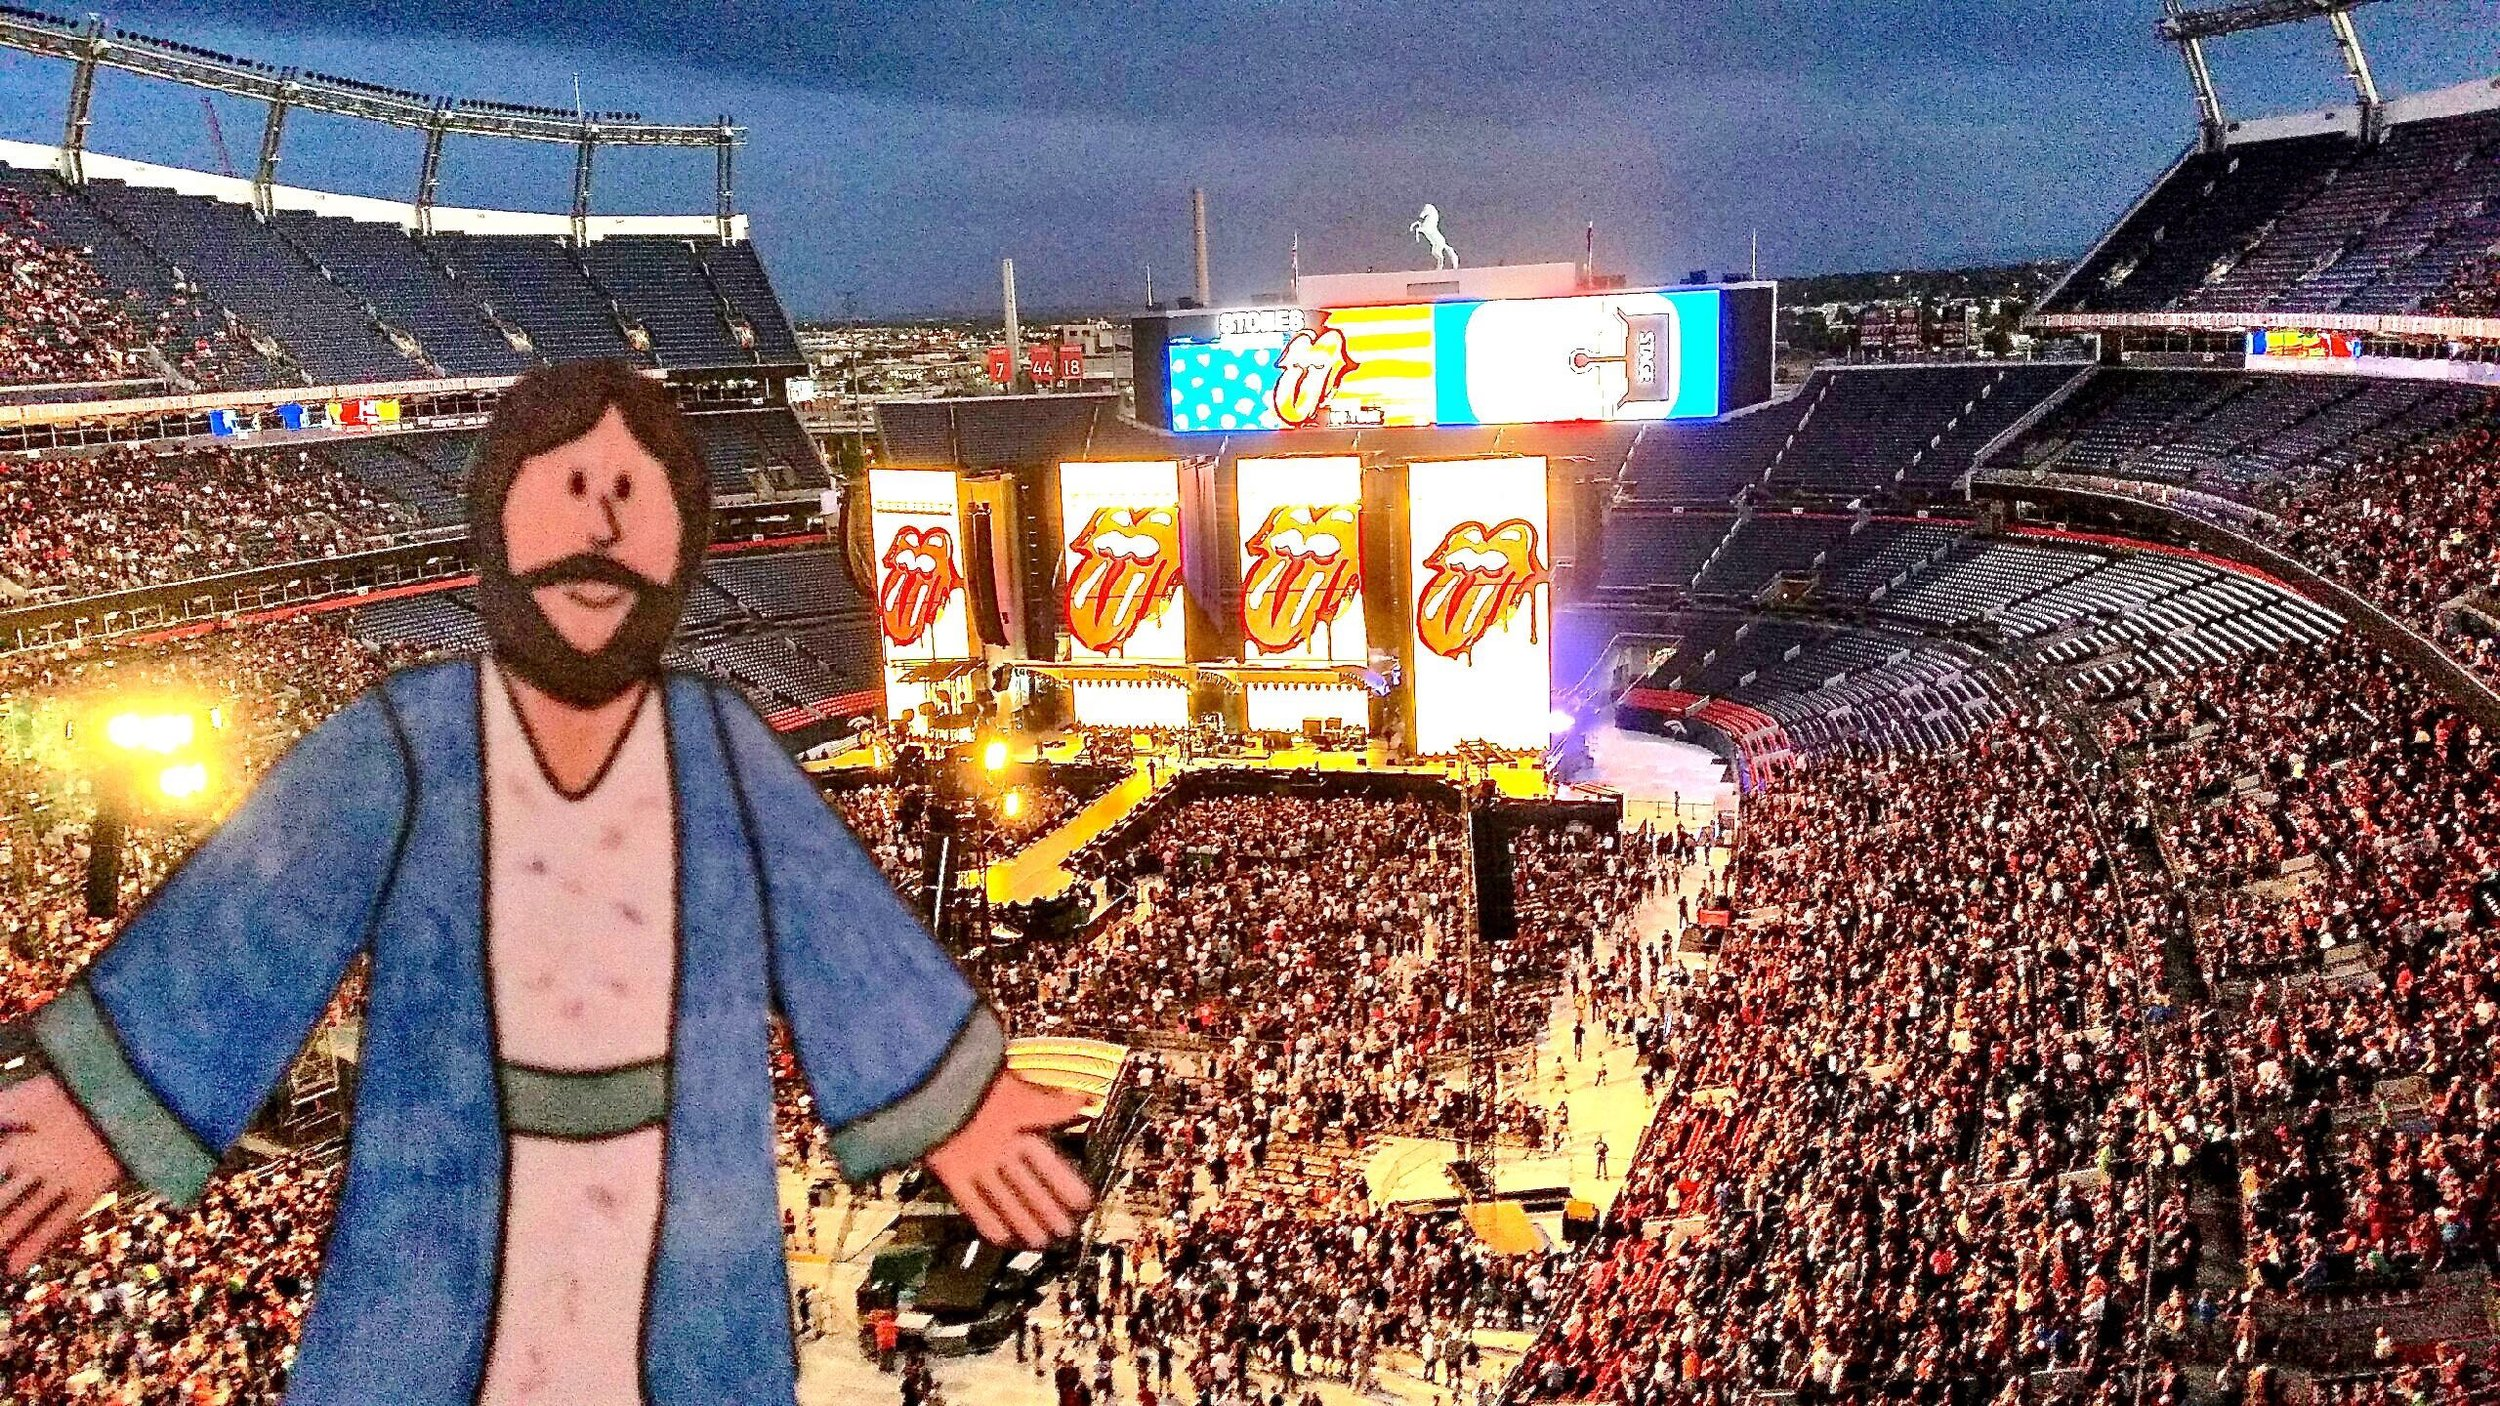 Flat James at the Rolling Stones concert